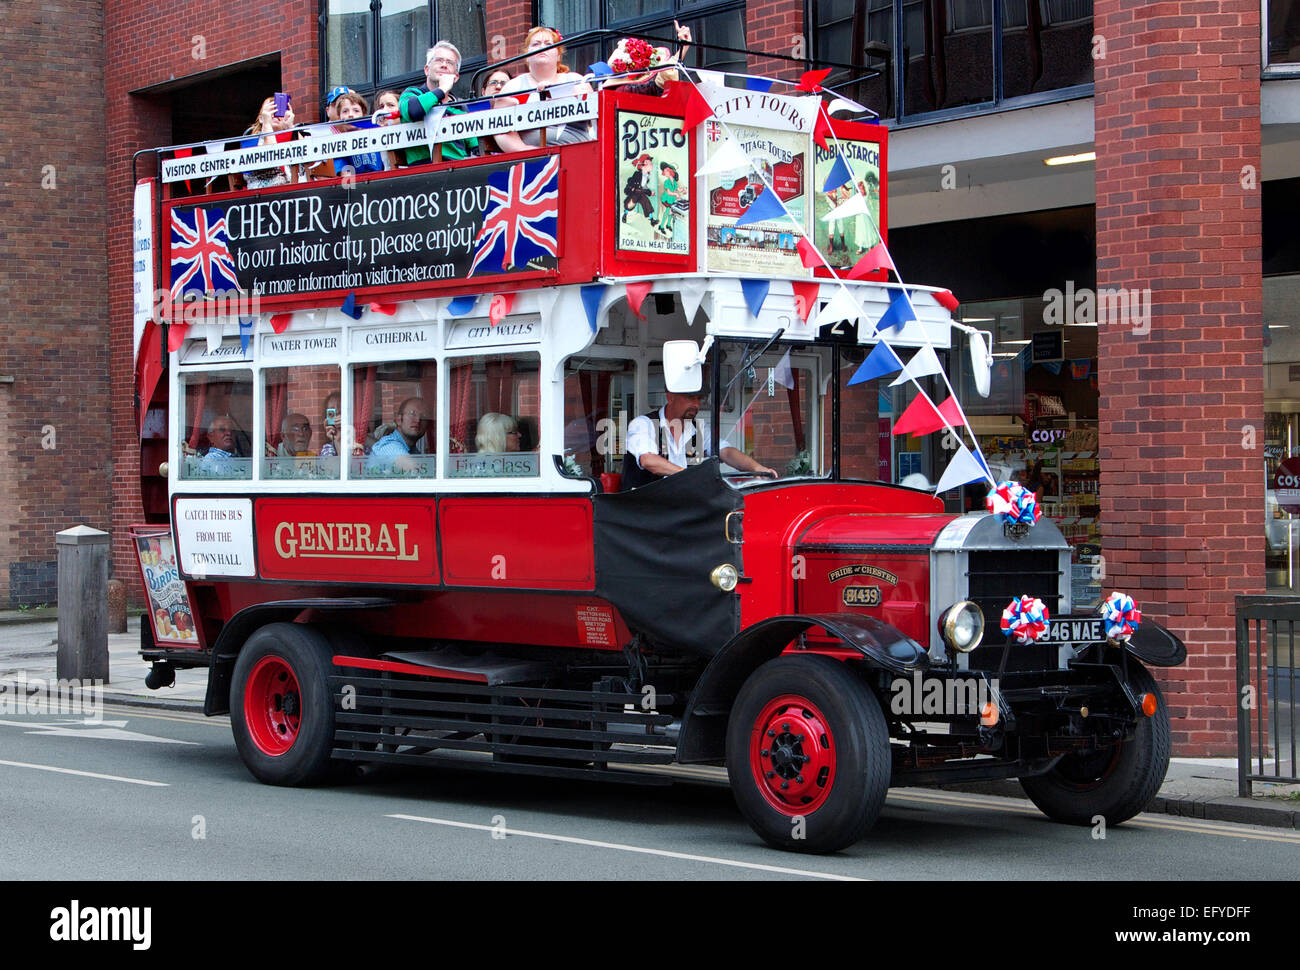 Old-fashioned red, double-decker tour bus in Chester, England - Stock Image